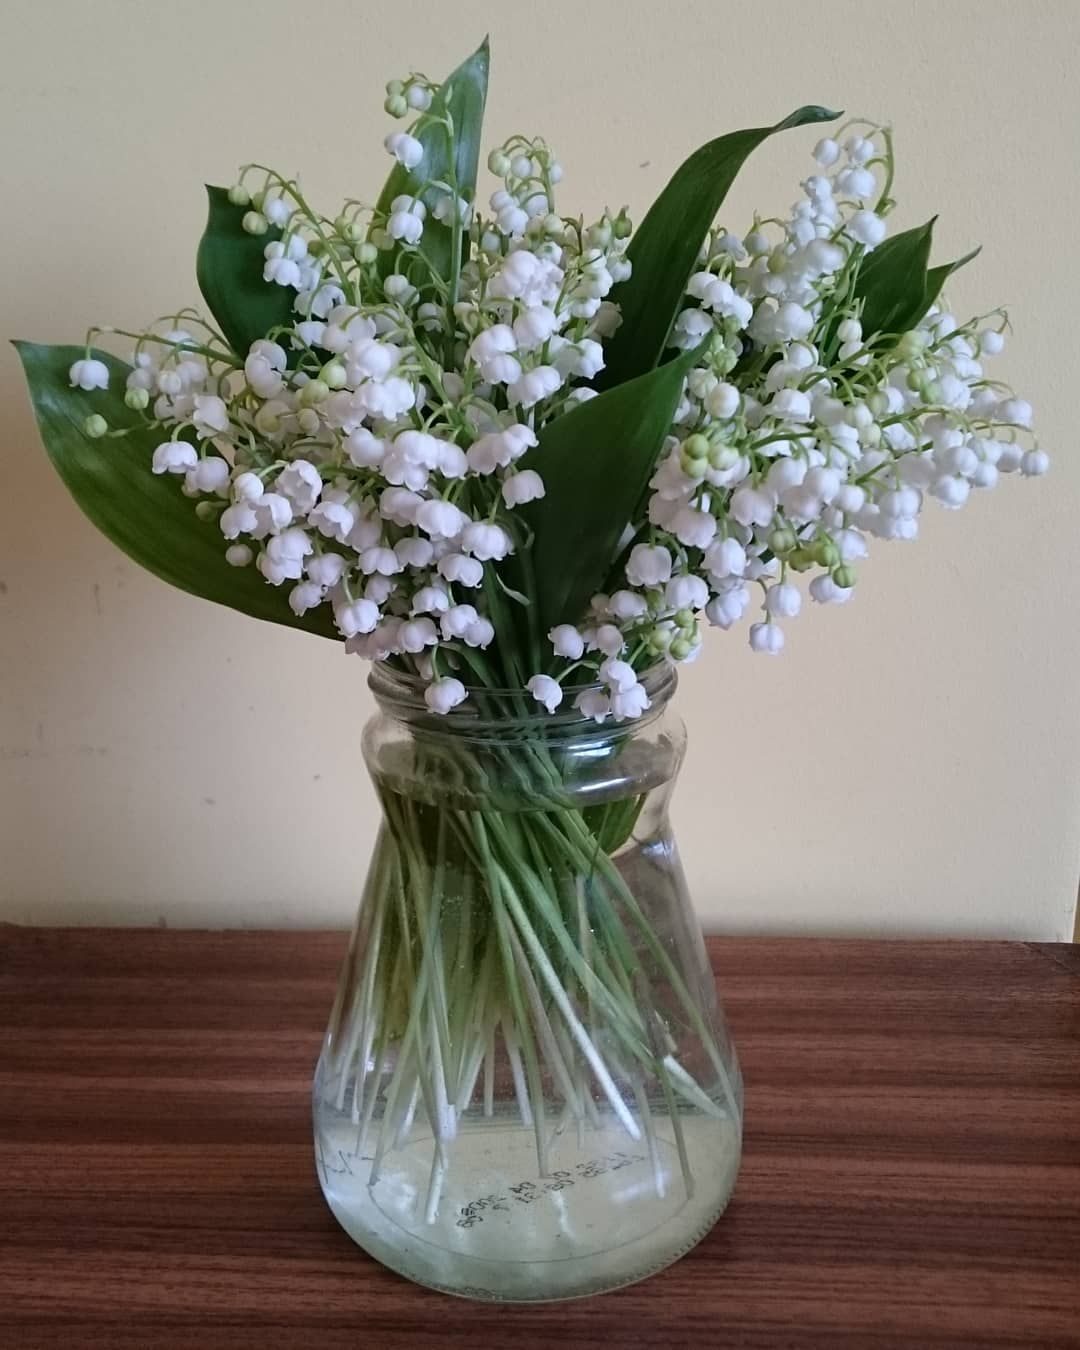 Lilies Of The Valley My Favourite Plants They Are Beautiful And Have Wonderful Smell Plant Plants Konwalie Konwalia L Lily Of The Valley Plants Flowers